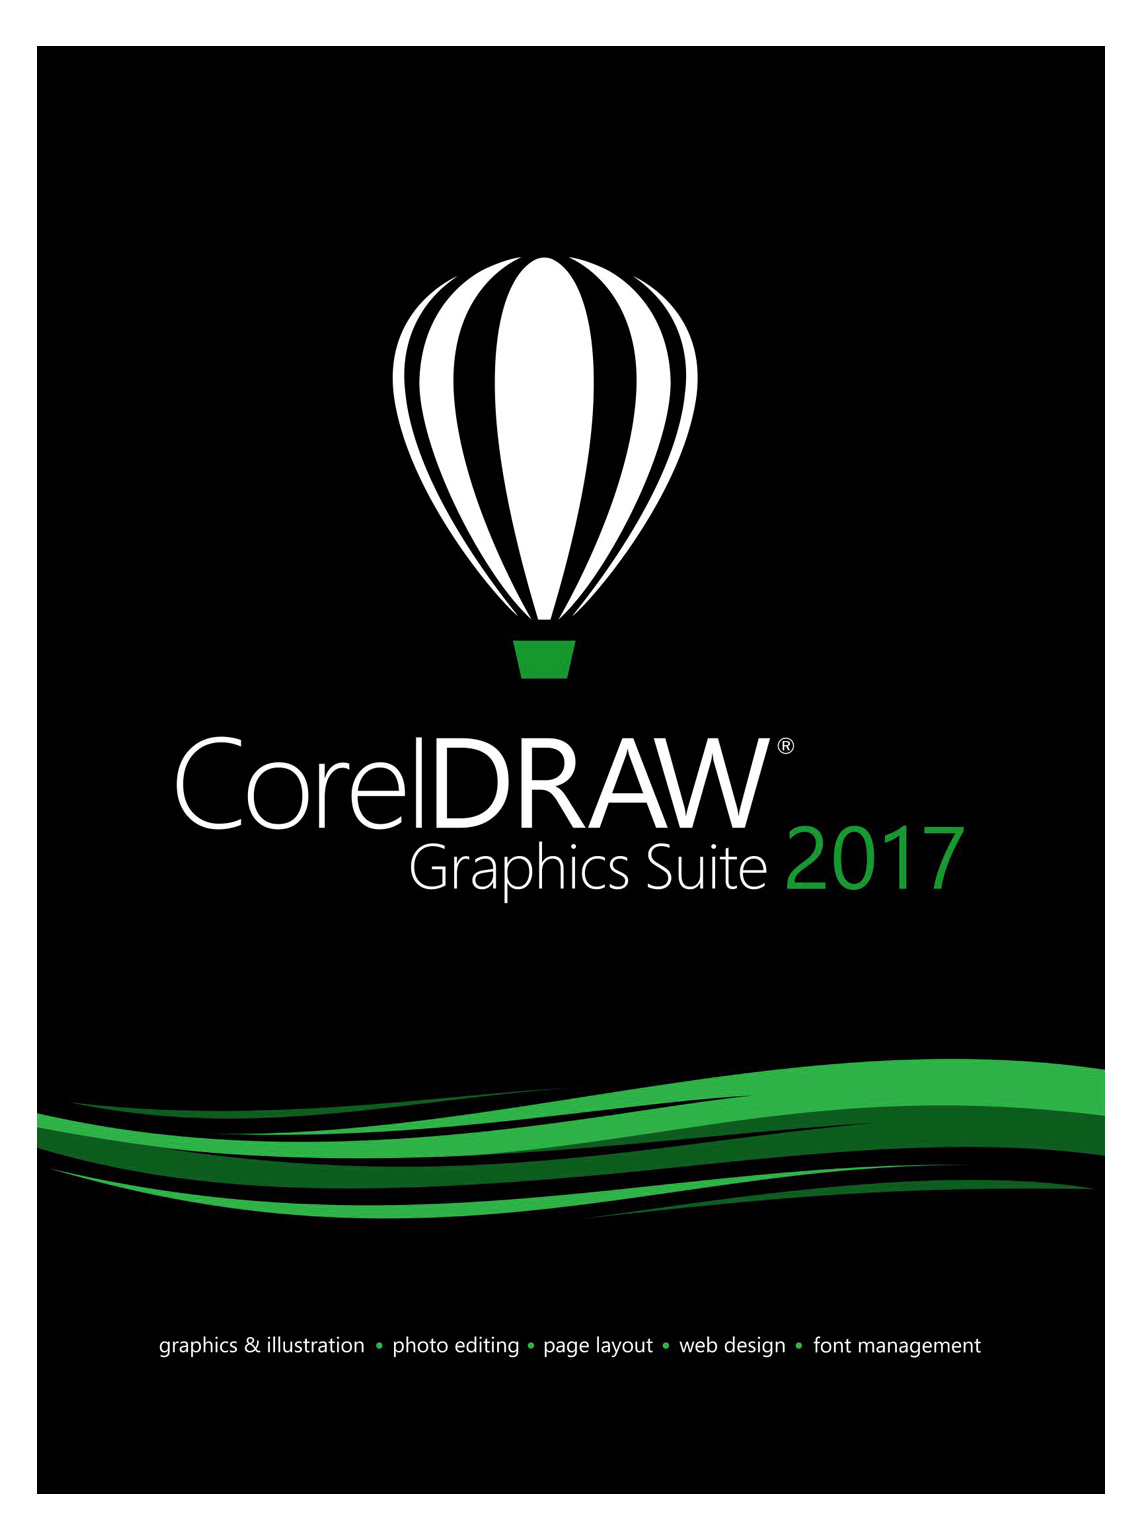 CorelDRAW Graphics Suite 2017 19.0.0.328 (x64) Retail (2017) Multi / Русский